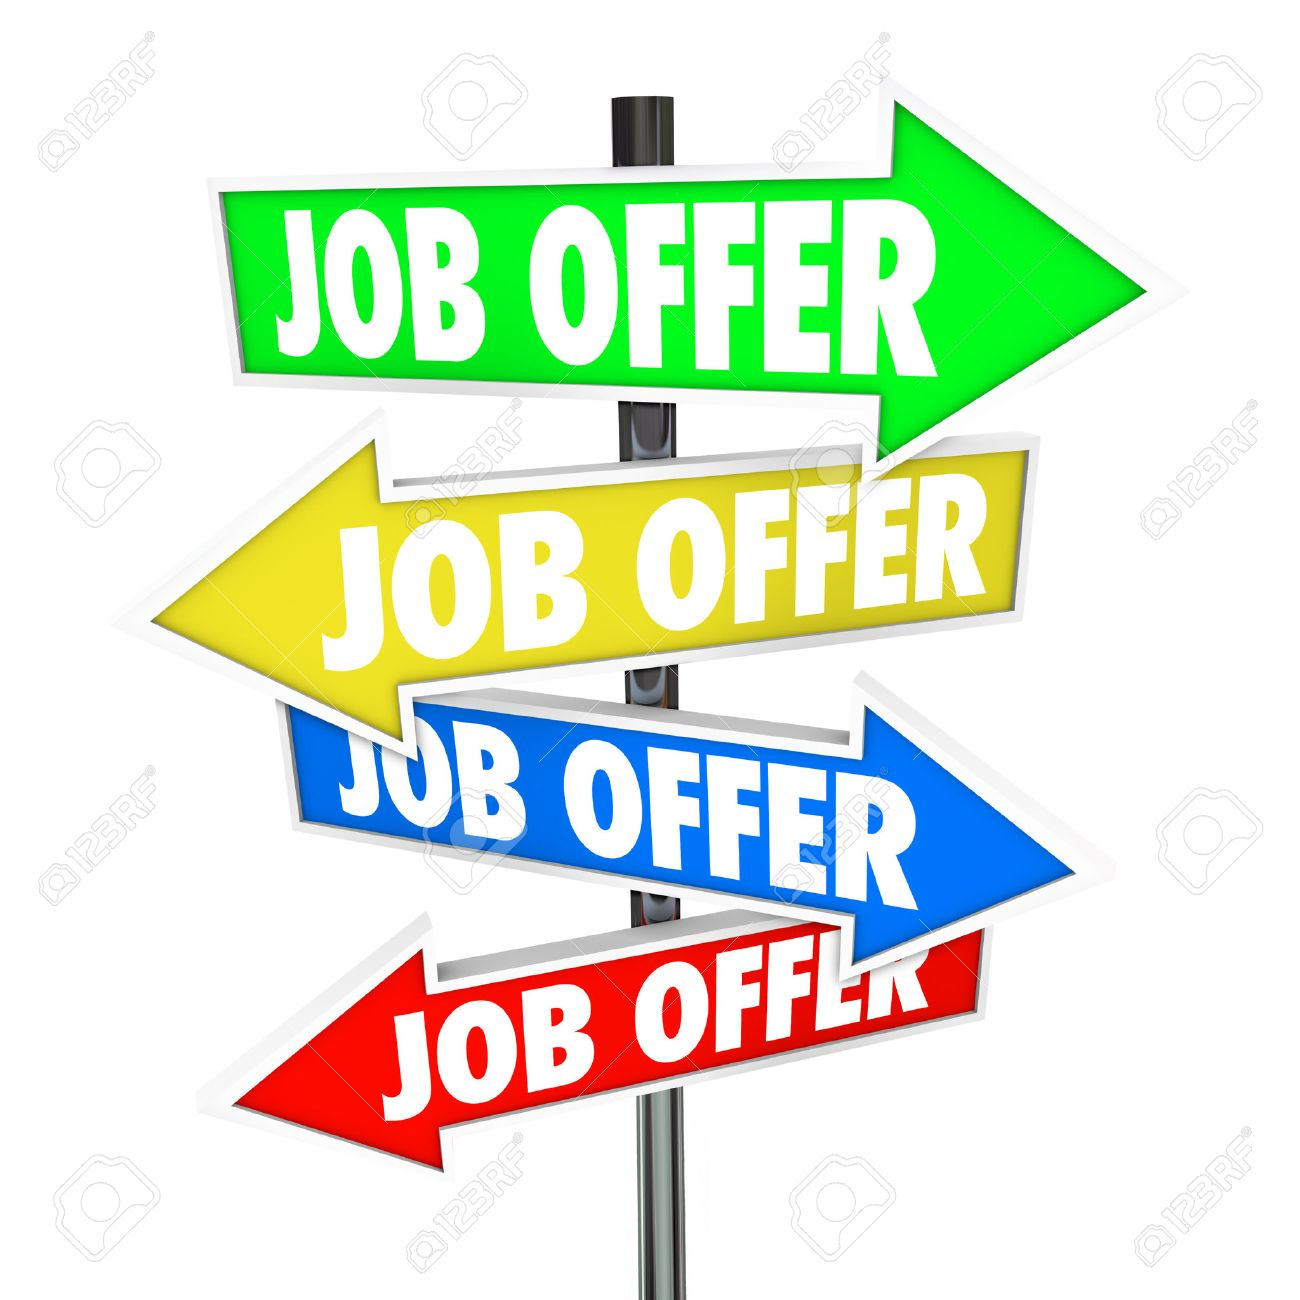 offering job images stock pictures royalty offering job offering job job offers on several arrow signs new career opportunities and work recruitment that